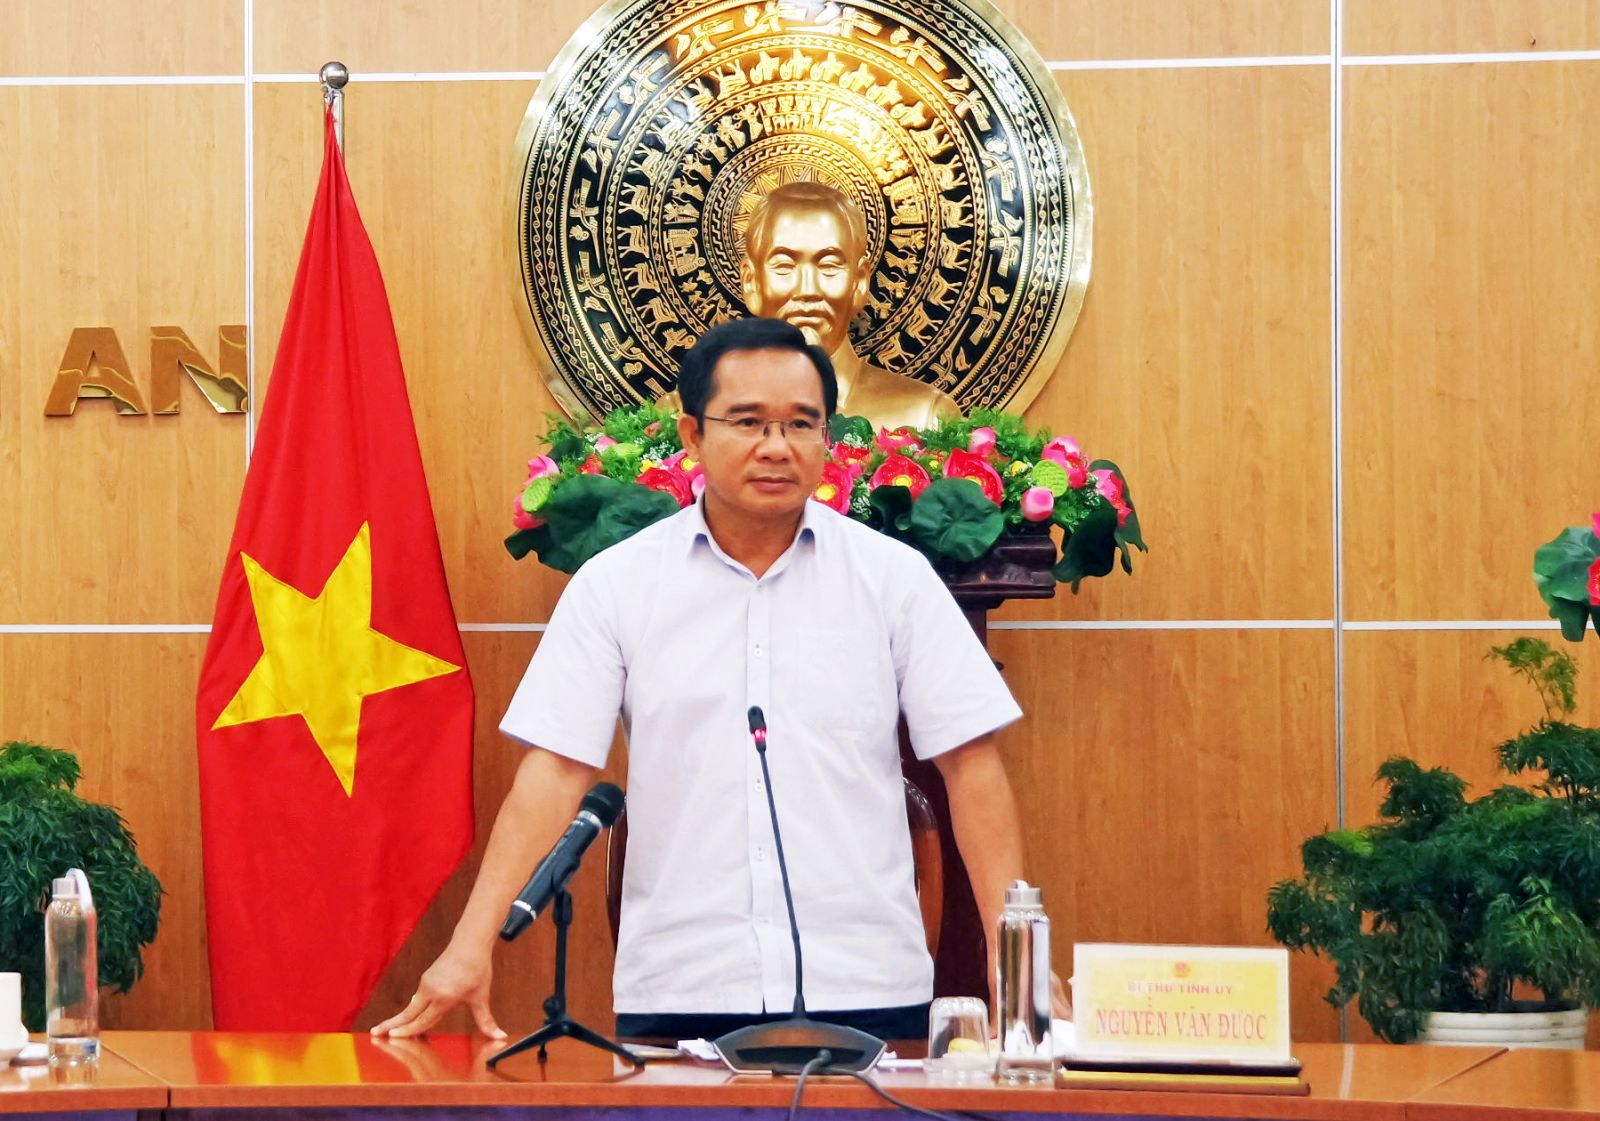 Secretary of the Long An Party Committee - Nguyen Van Duoc requires to have the cooperation and synchronous coordination of all levels and branches, the consensus and determination of the people in preventing and fighting against Covid-19